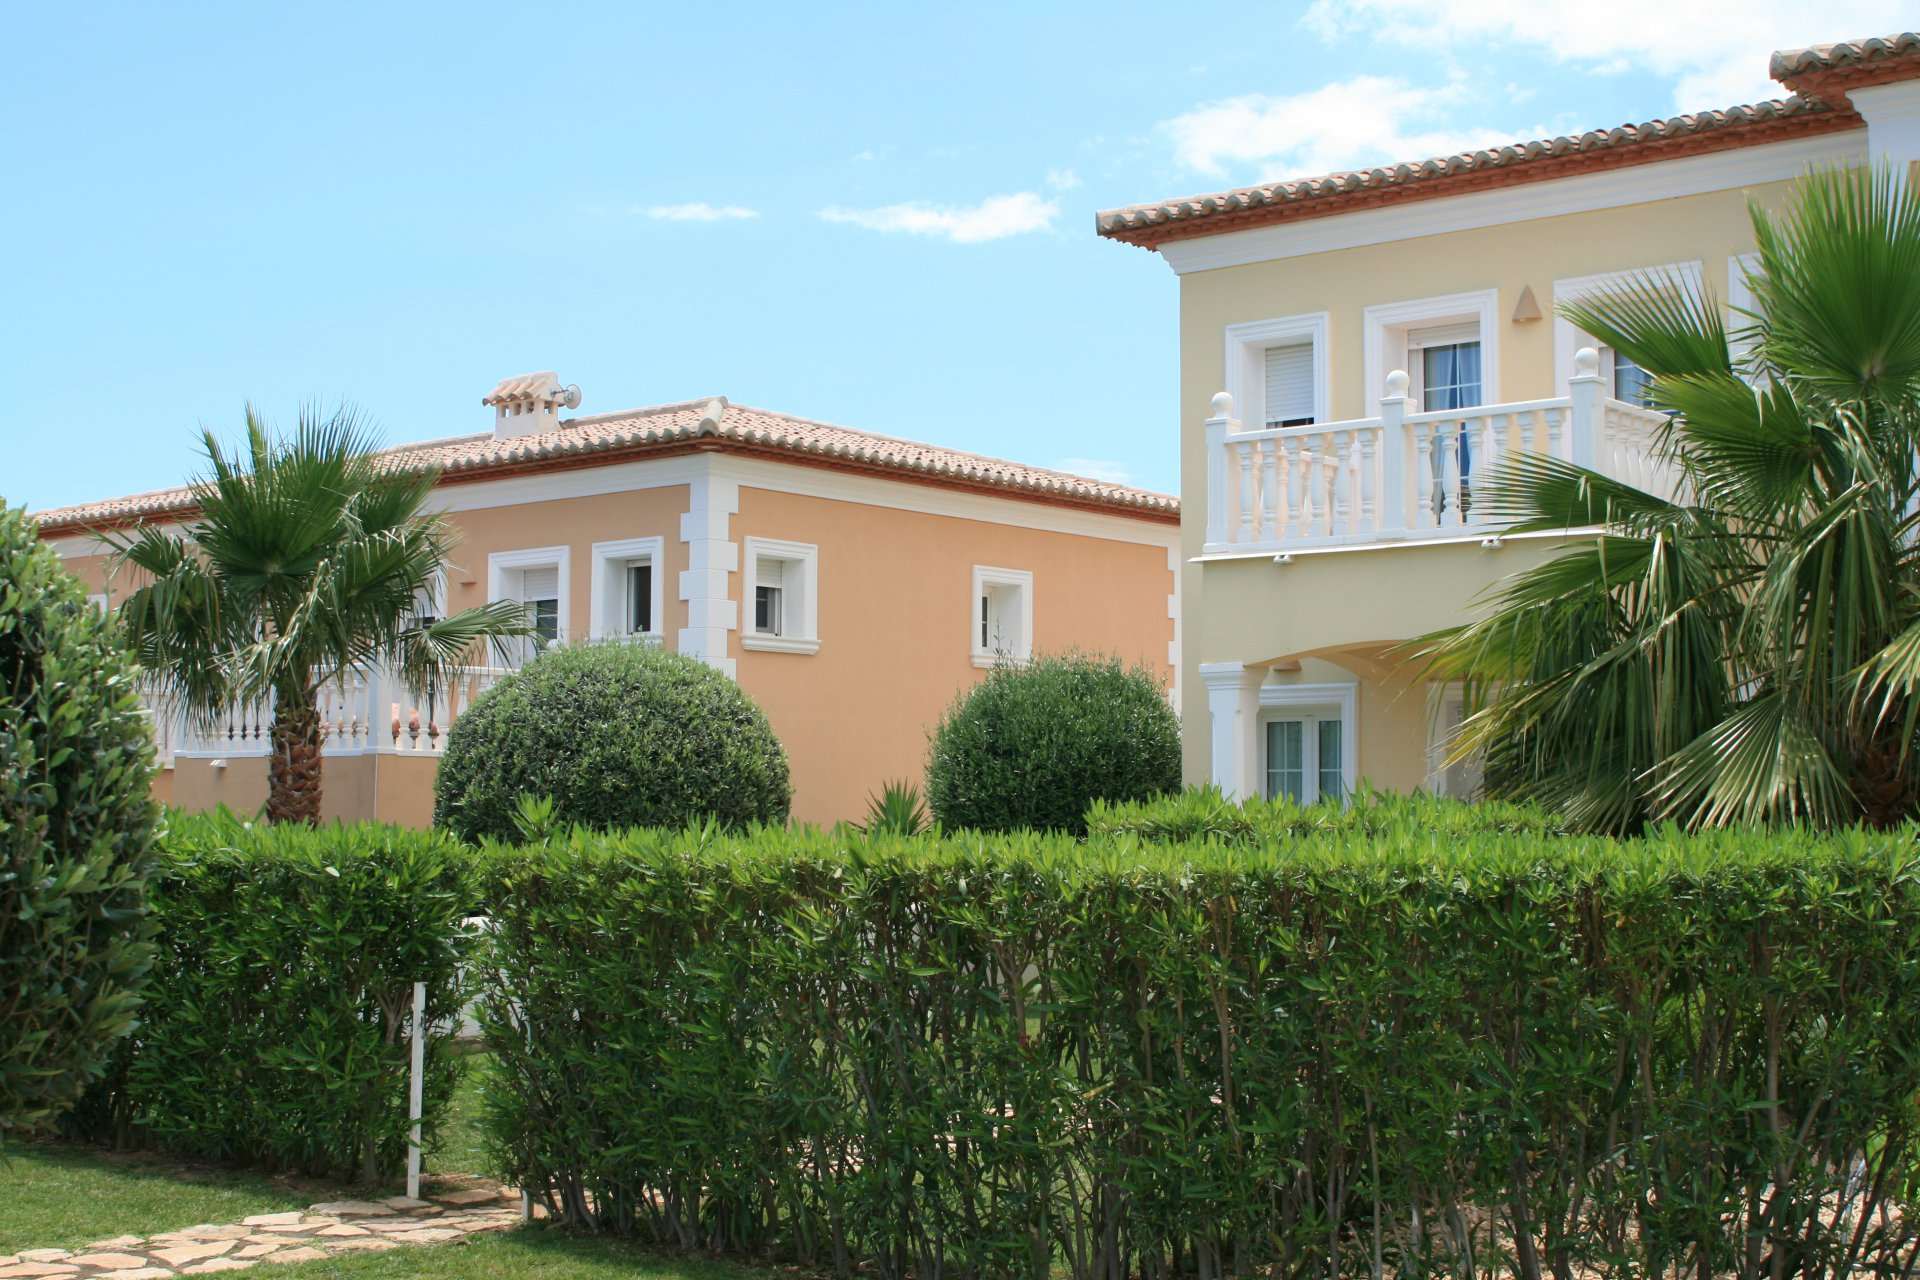 3-bedroom bungalow Residencial BelAir in Calpe